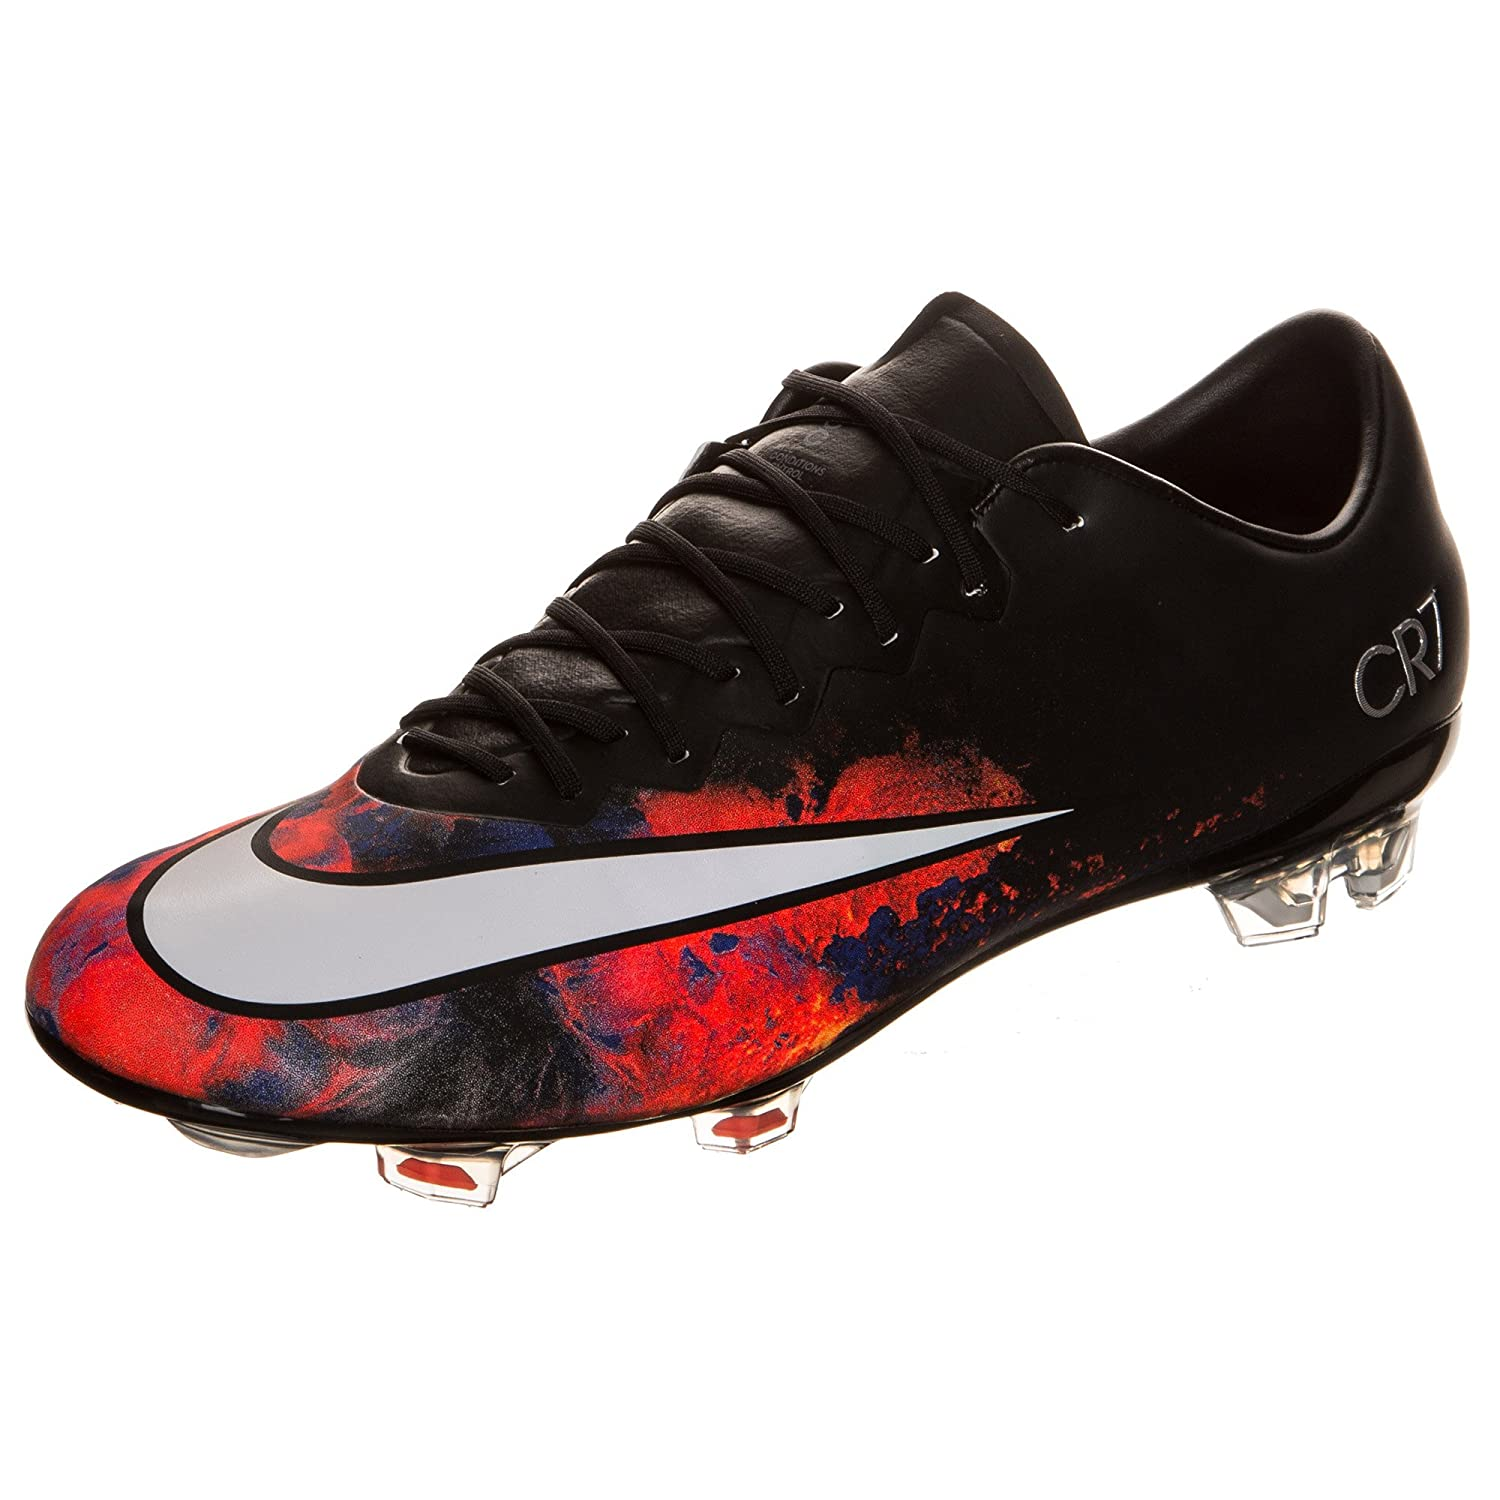 ee070a2fe ... purchase amazon nike mercurial vapor x cr7 fg mens firm ground soccer  cleats black white soccer